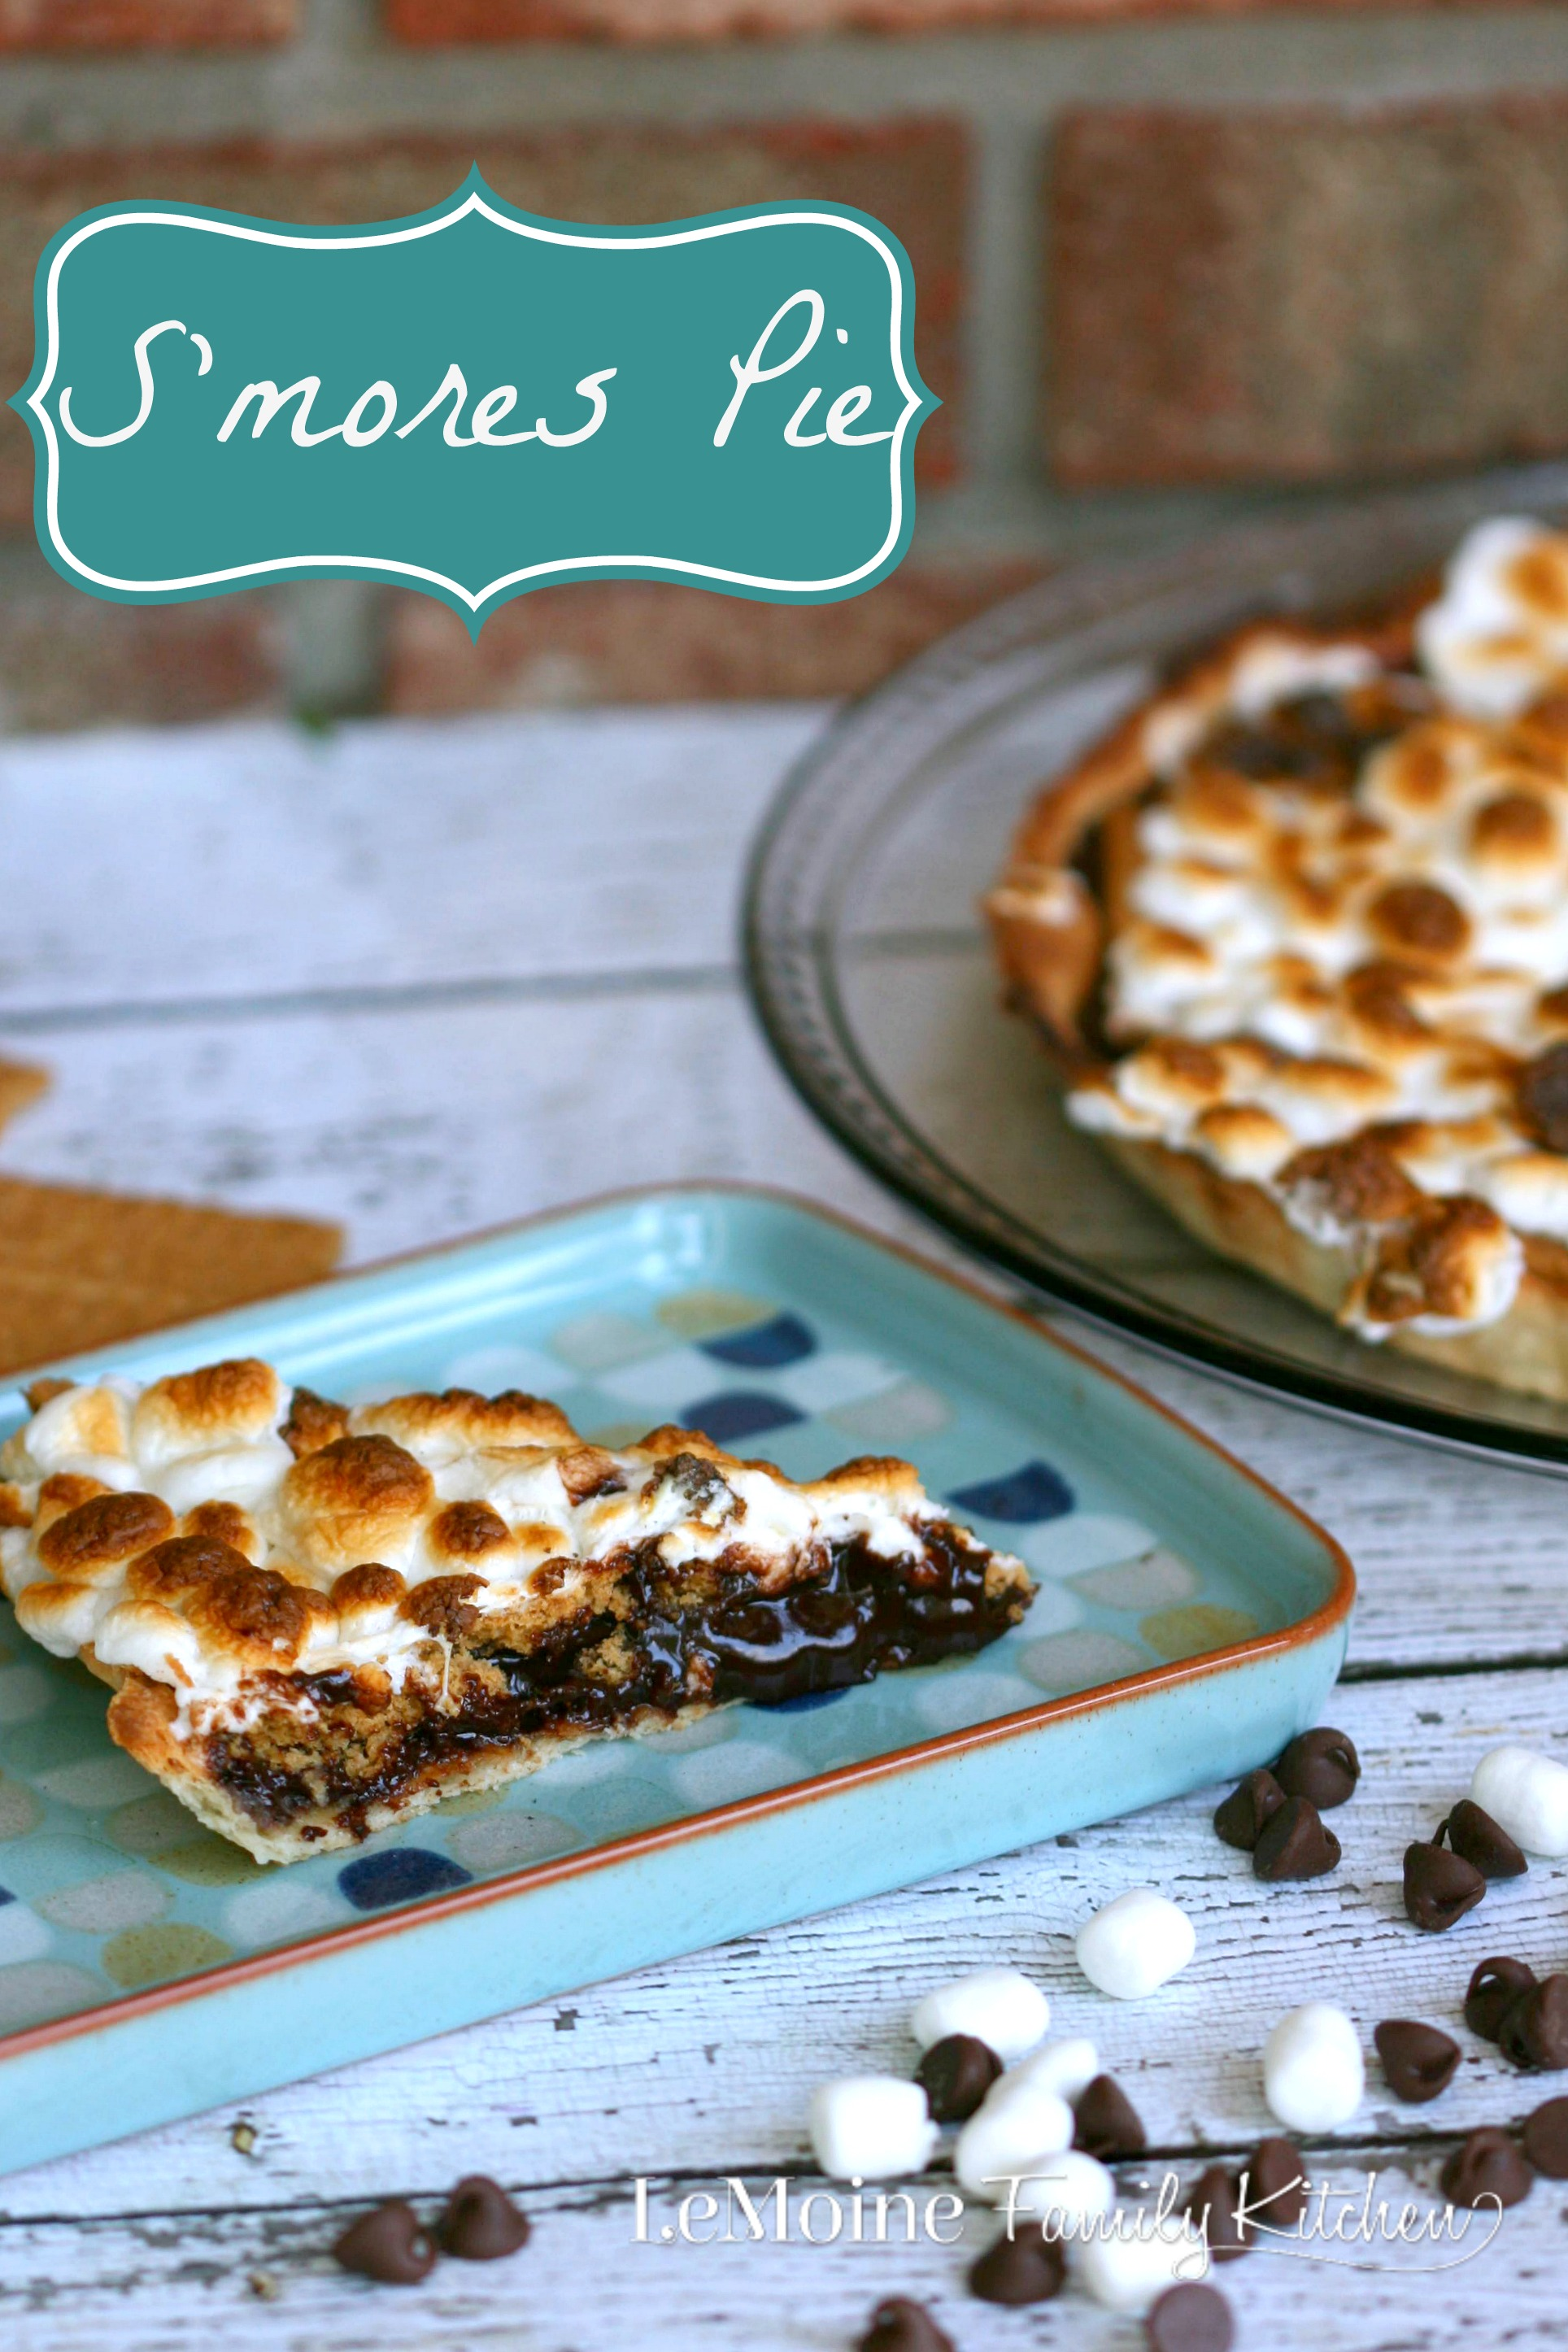 S'mores Pie | LeMoine Family Kitchen. The most amazing pie! Layers of chocolate ganache, graham cracker and perfectly toasted marshmallow! Absolutely heavenly!